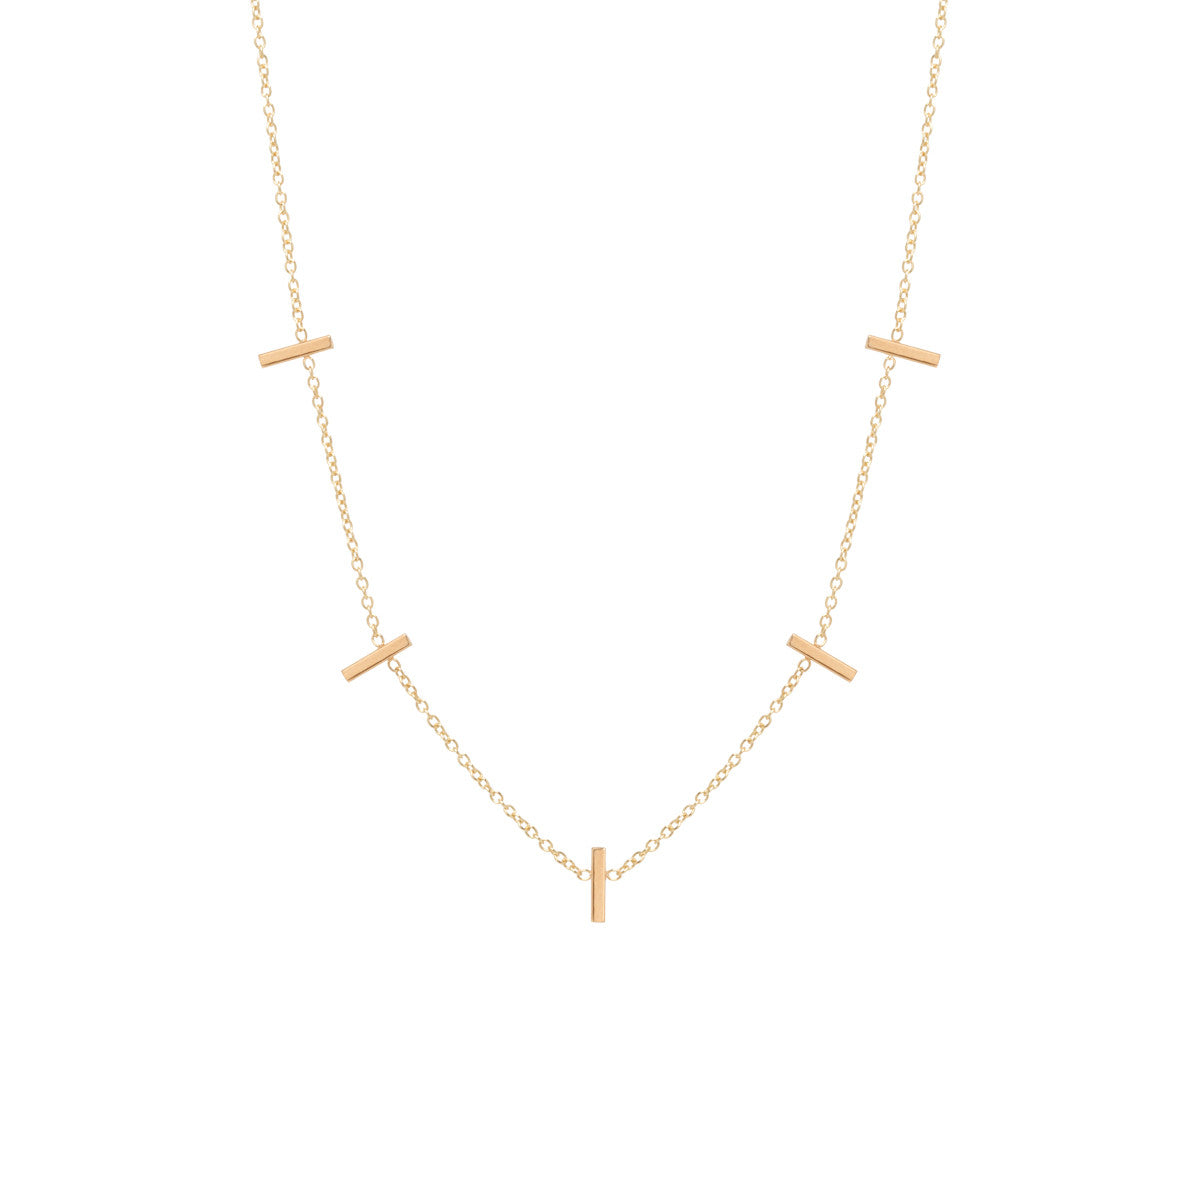 Zoë Chicco 14kt Yellow Gold 5 Tiny Bar Station Necklace